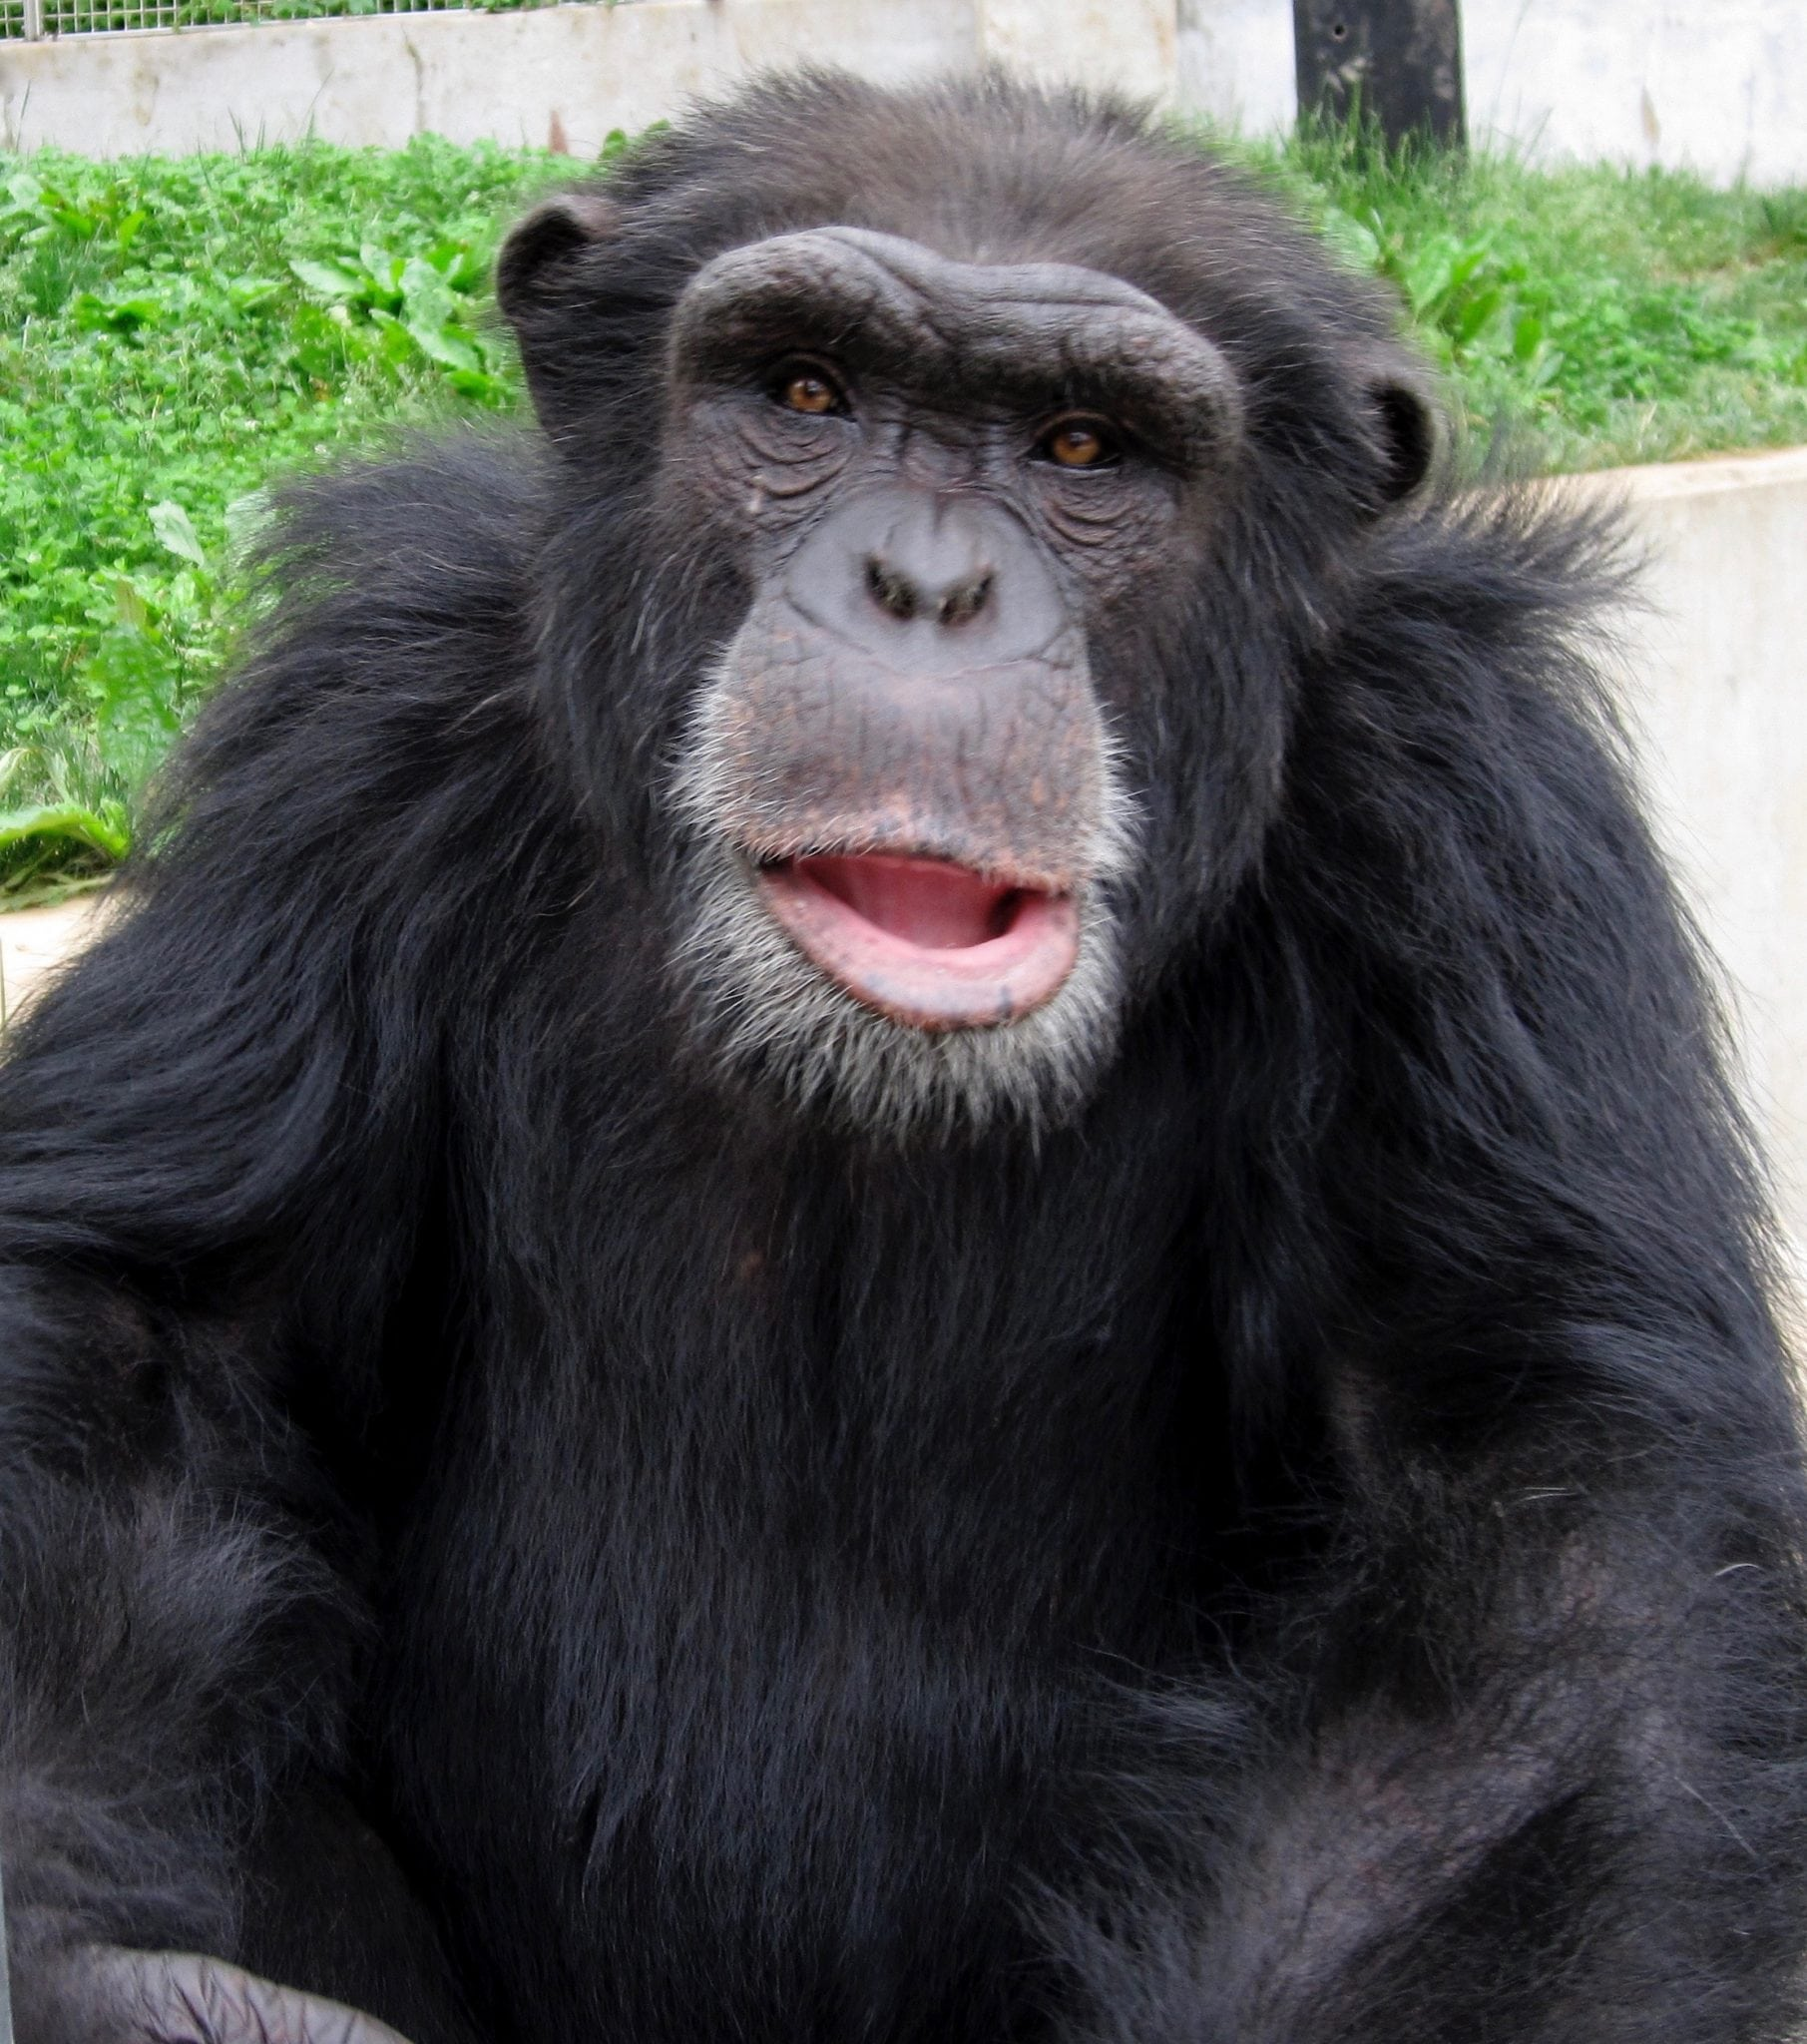 05-19-20102-Rodney-Chimpanzee-copy